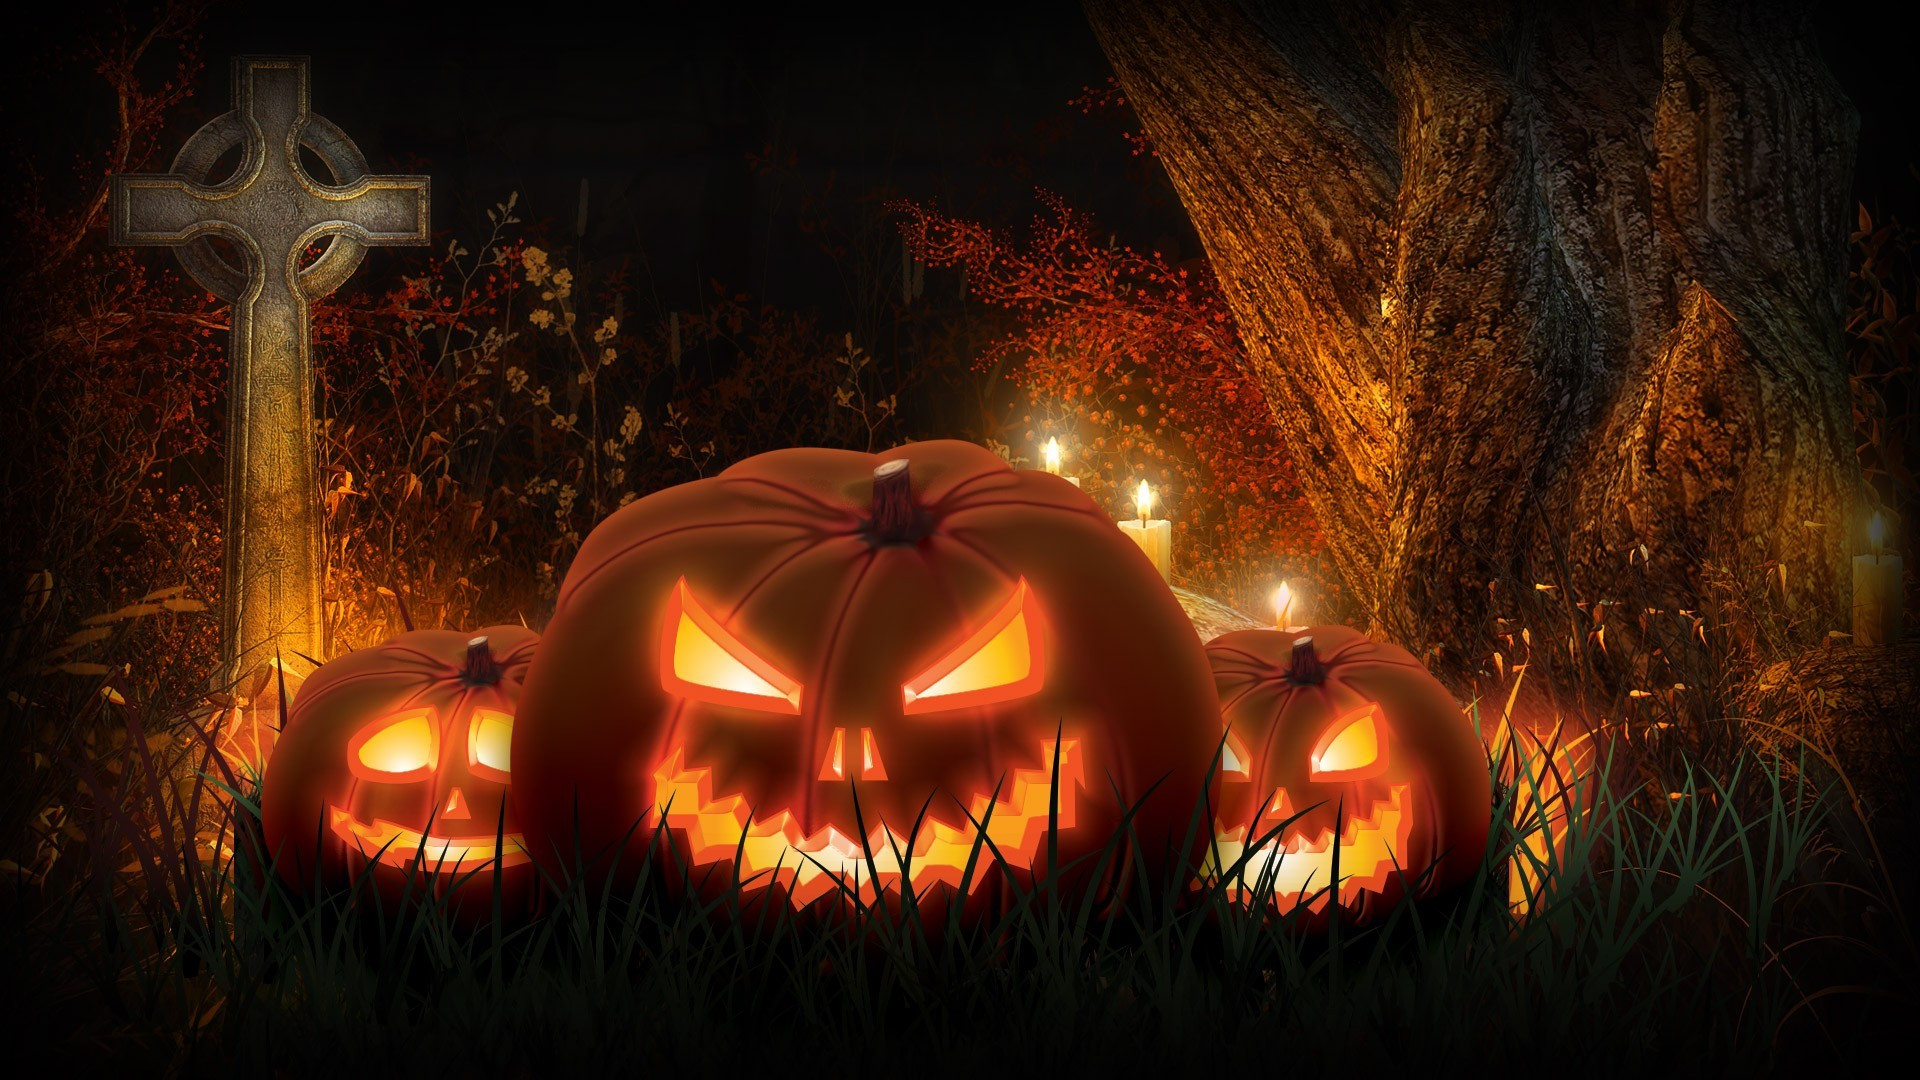 scarecrows and pumpkins wallpaper  58 images tree house autumn 5k results tree house autumn 5k results